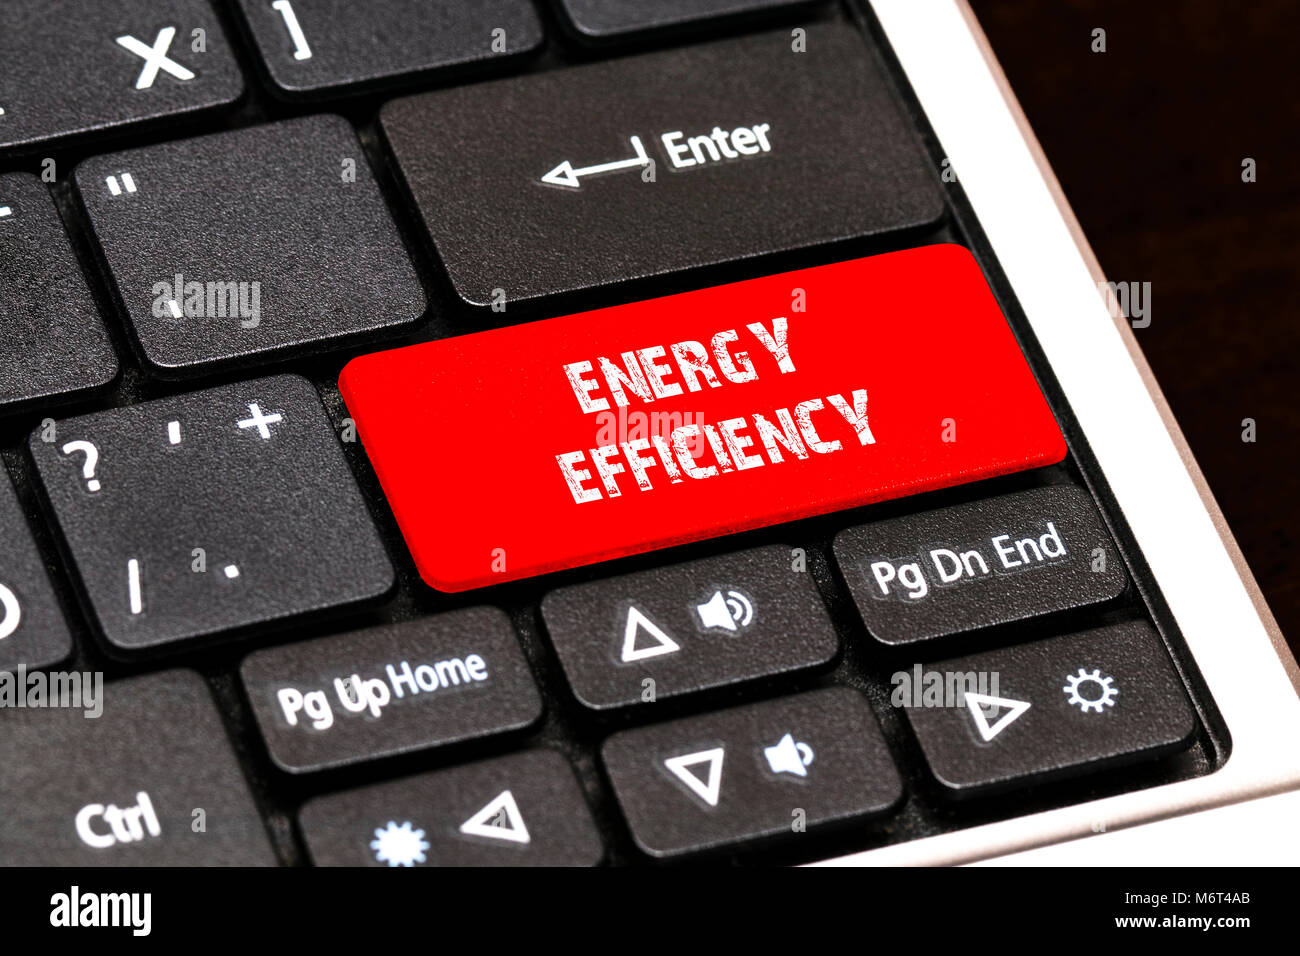 On the laptop keyboard the red button written ENERGY EFFICIENCY. - Stock Image